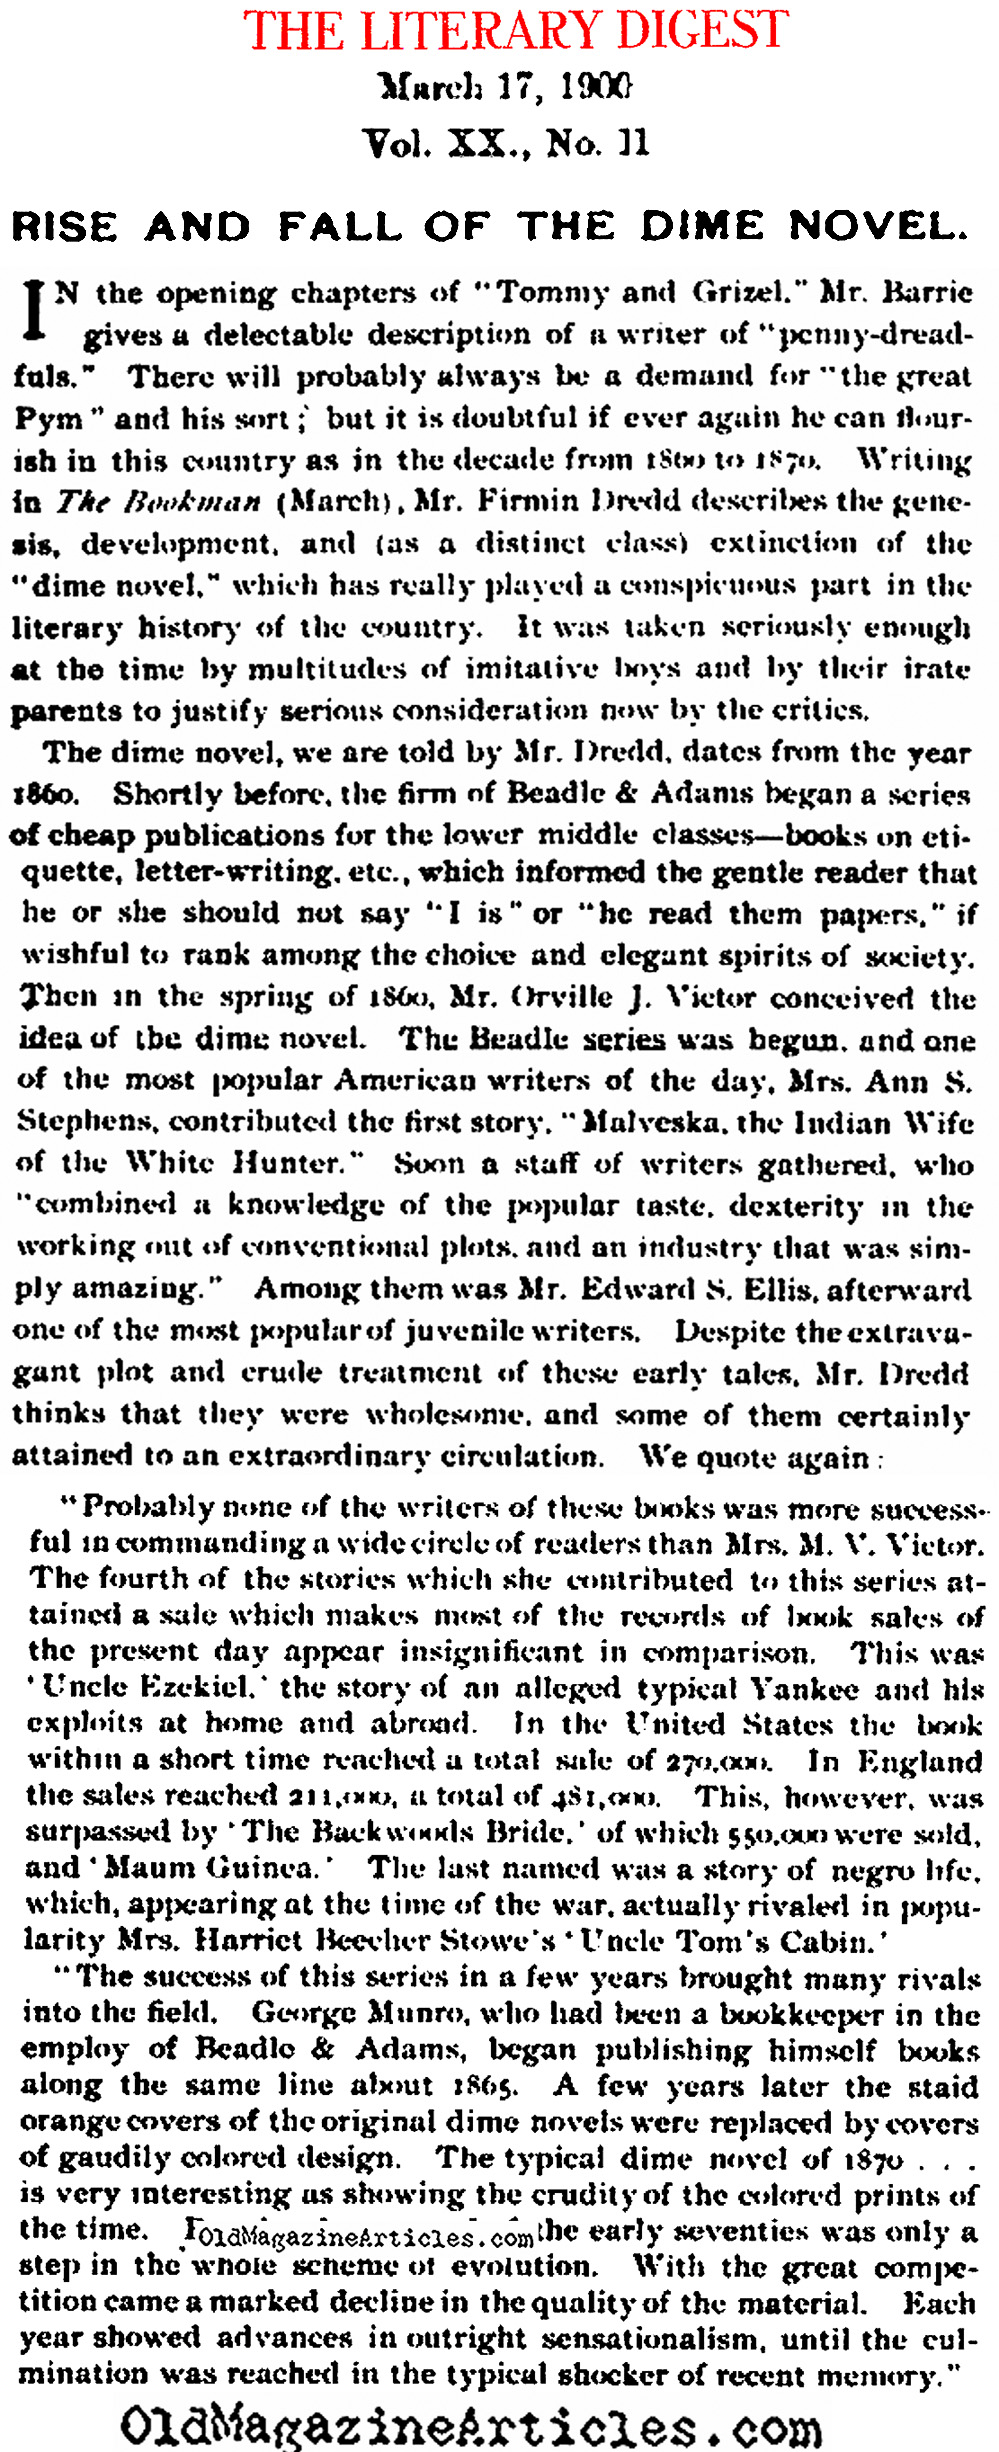 ''Rise and Fall of the Dime Novel'' (Literary Digest, 1900)